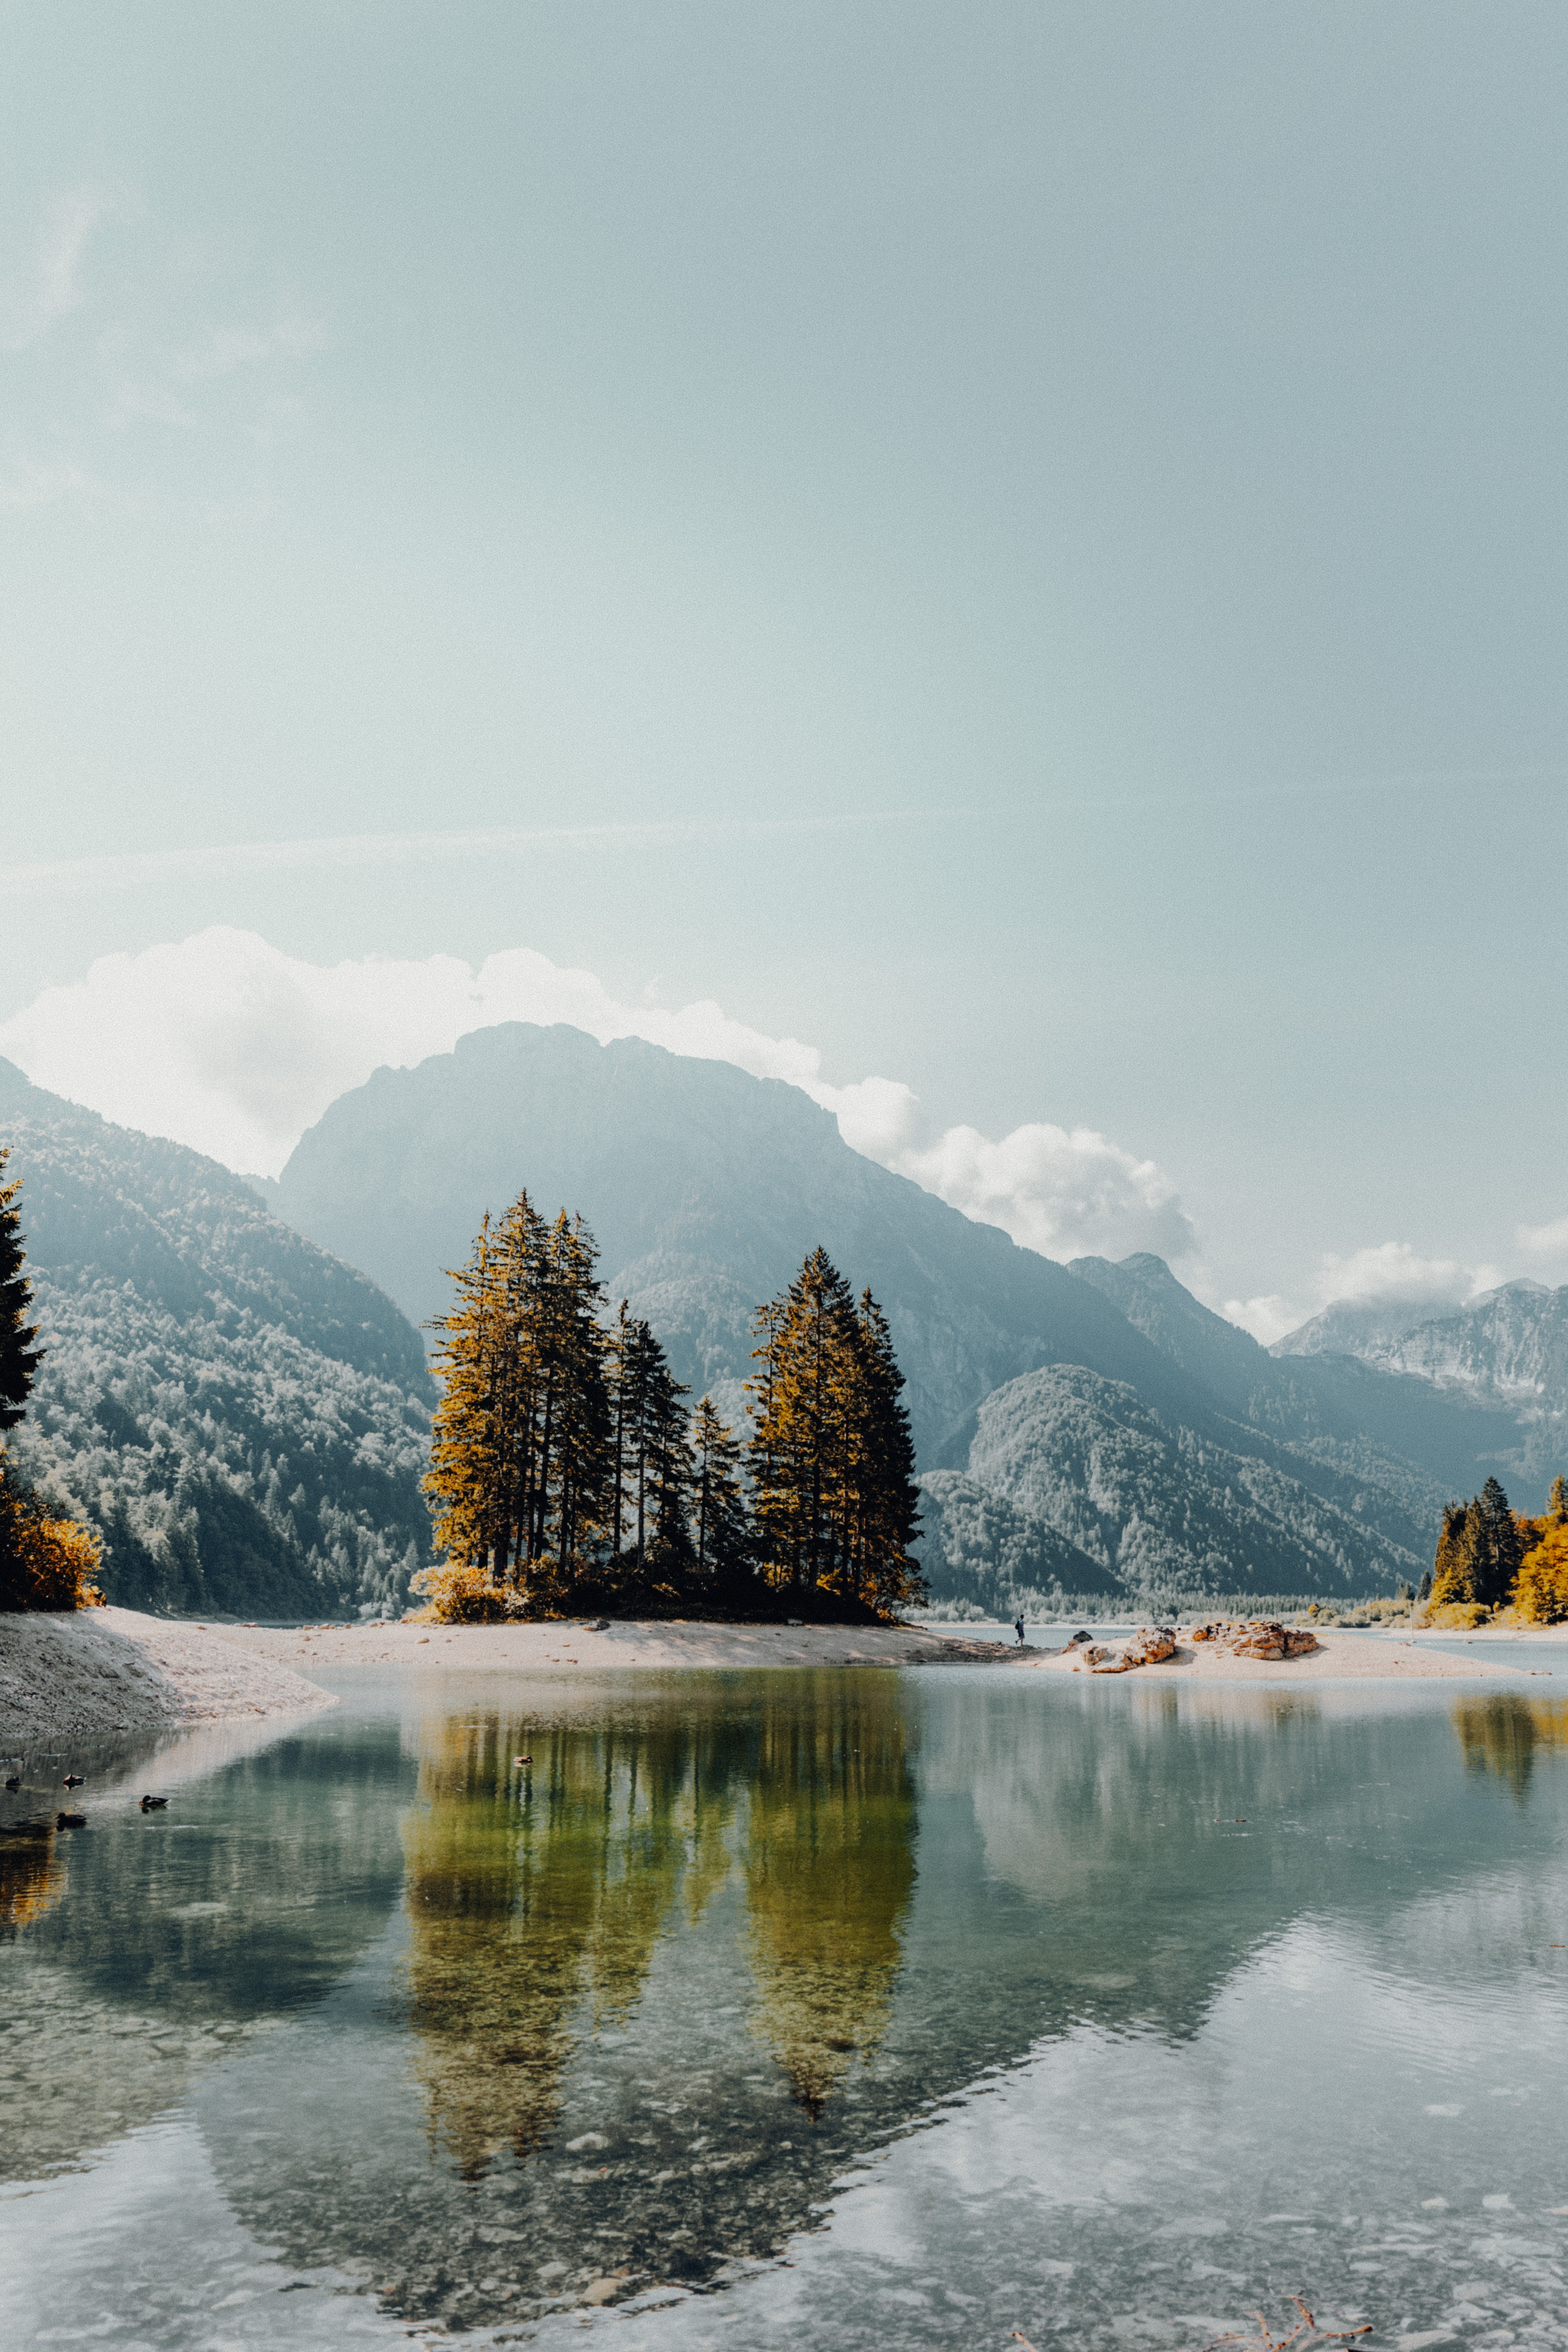 57458 download wallpaper Trees, Landscape, Nature, Mountains, Lake, Shore, Bank, Fog screensavers and pictures for free